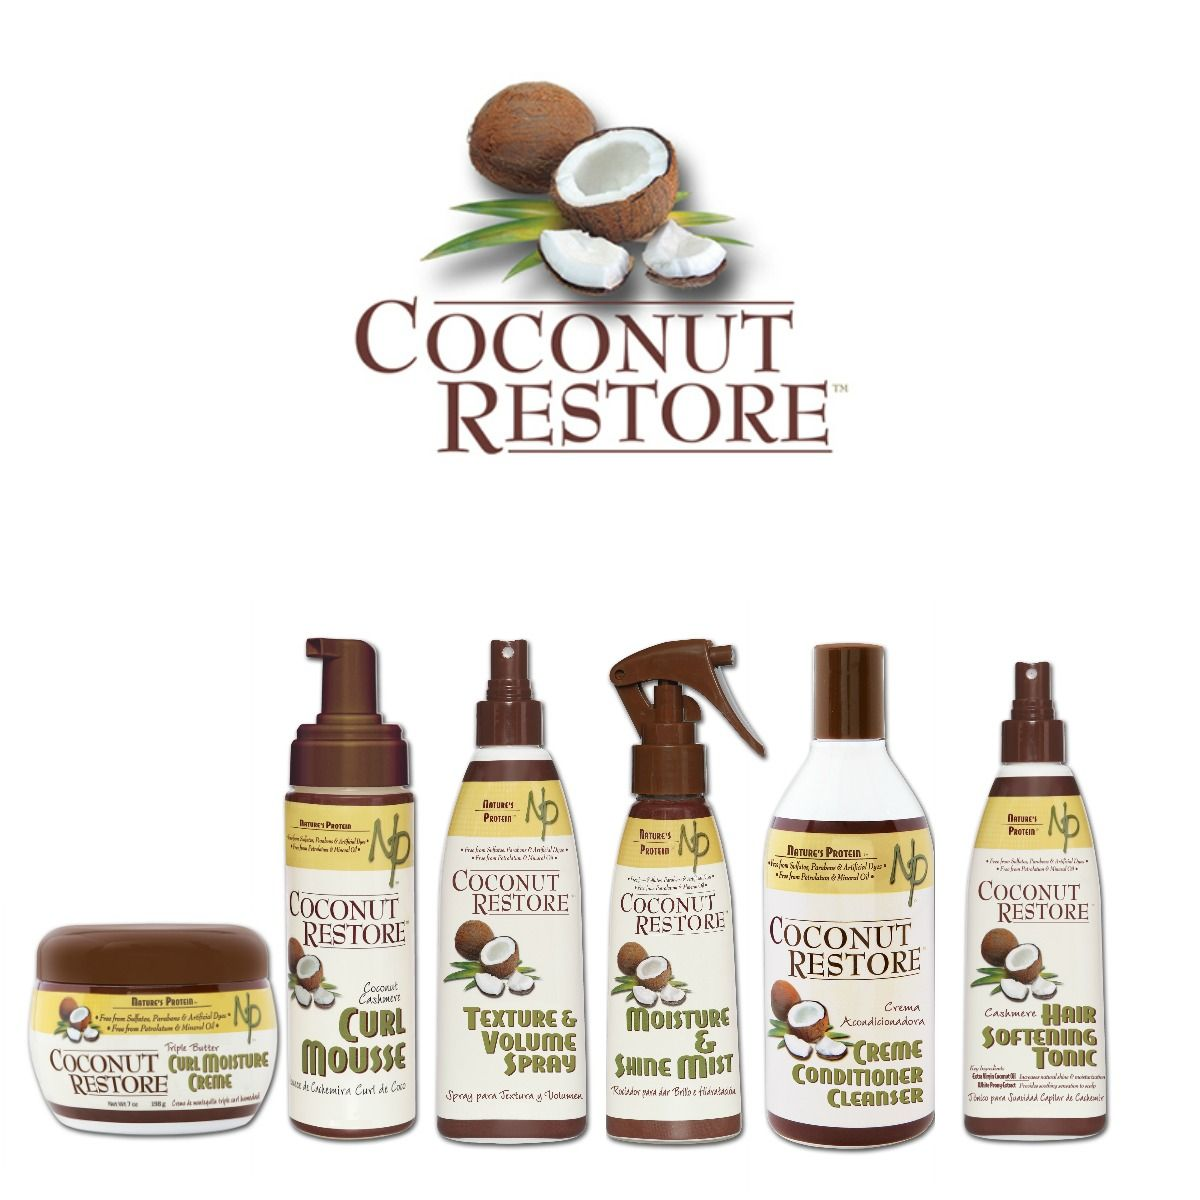 We are teaming up with @iHeartRadio and @myV101 to celebrate our new product launch in #Memphis this weekend!  Join us today @ Nicole's Beauty & Wigs on 3619 Riverdale from 11am to 1pm for samples and giveaways! #CoconutRestore